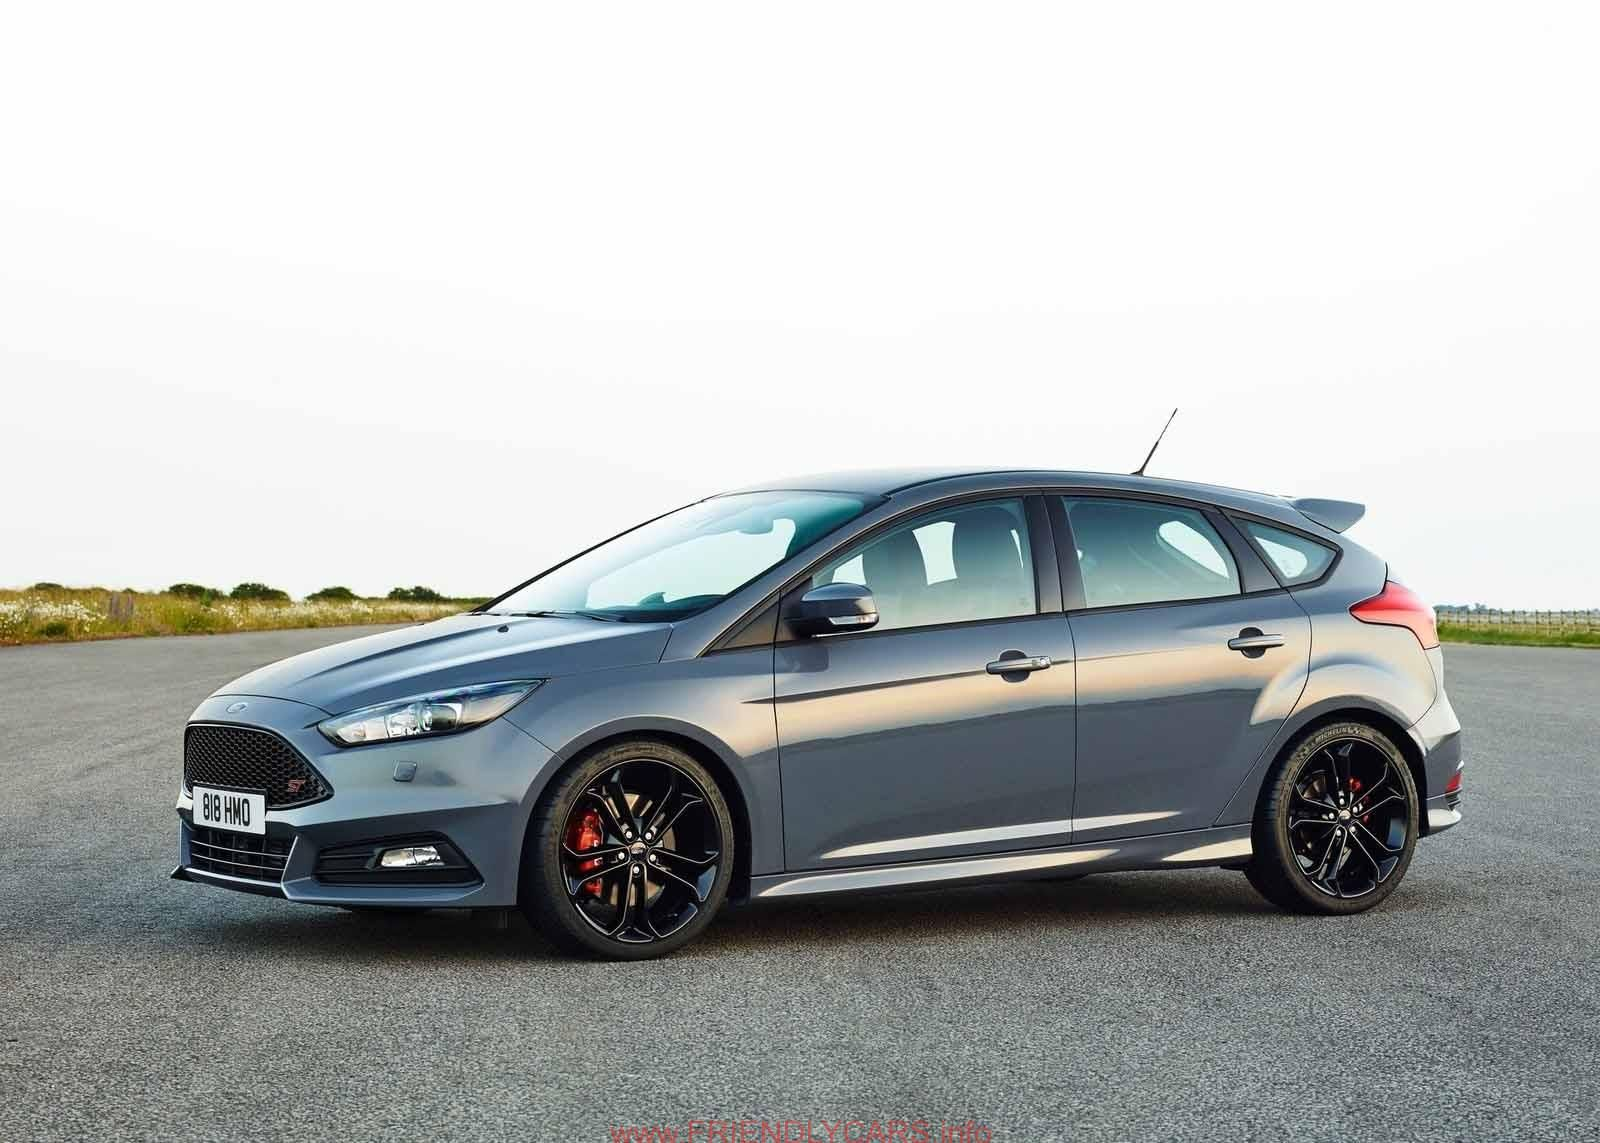 Awesome Ford Focus St Black Rims Car Images Hd 2015 Ford Focus St